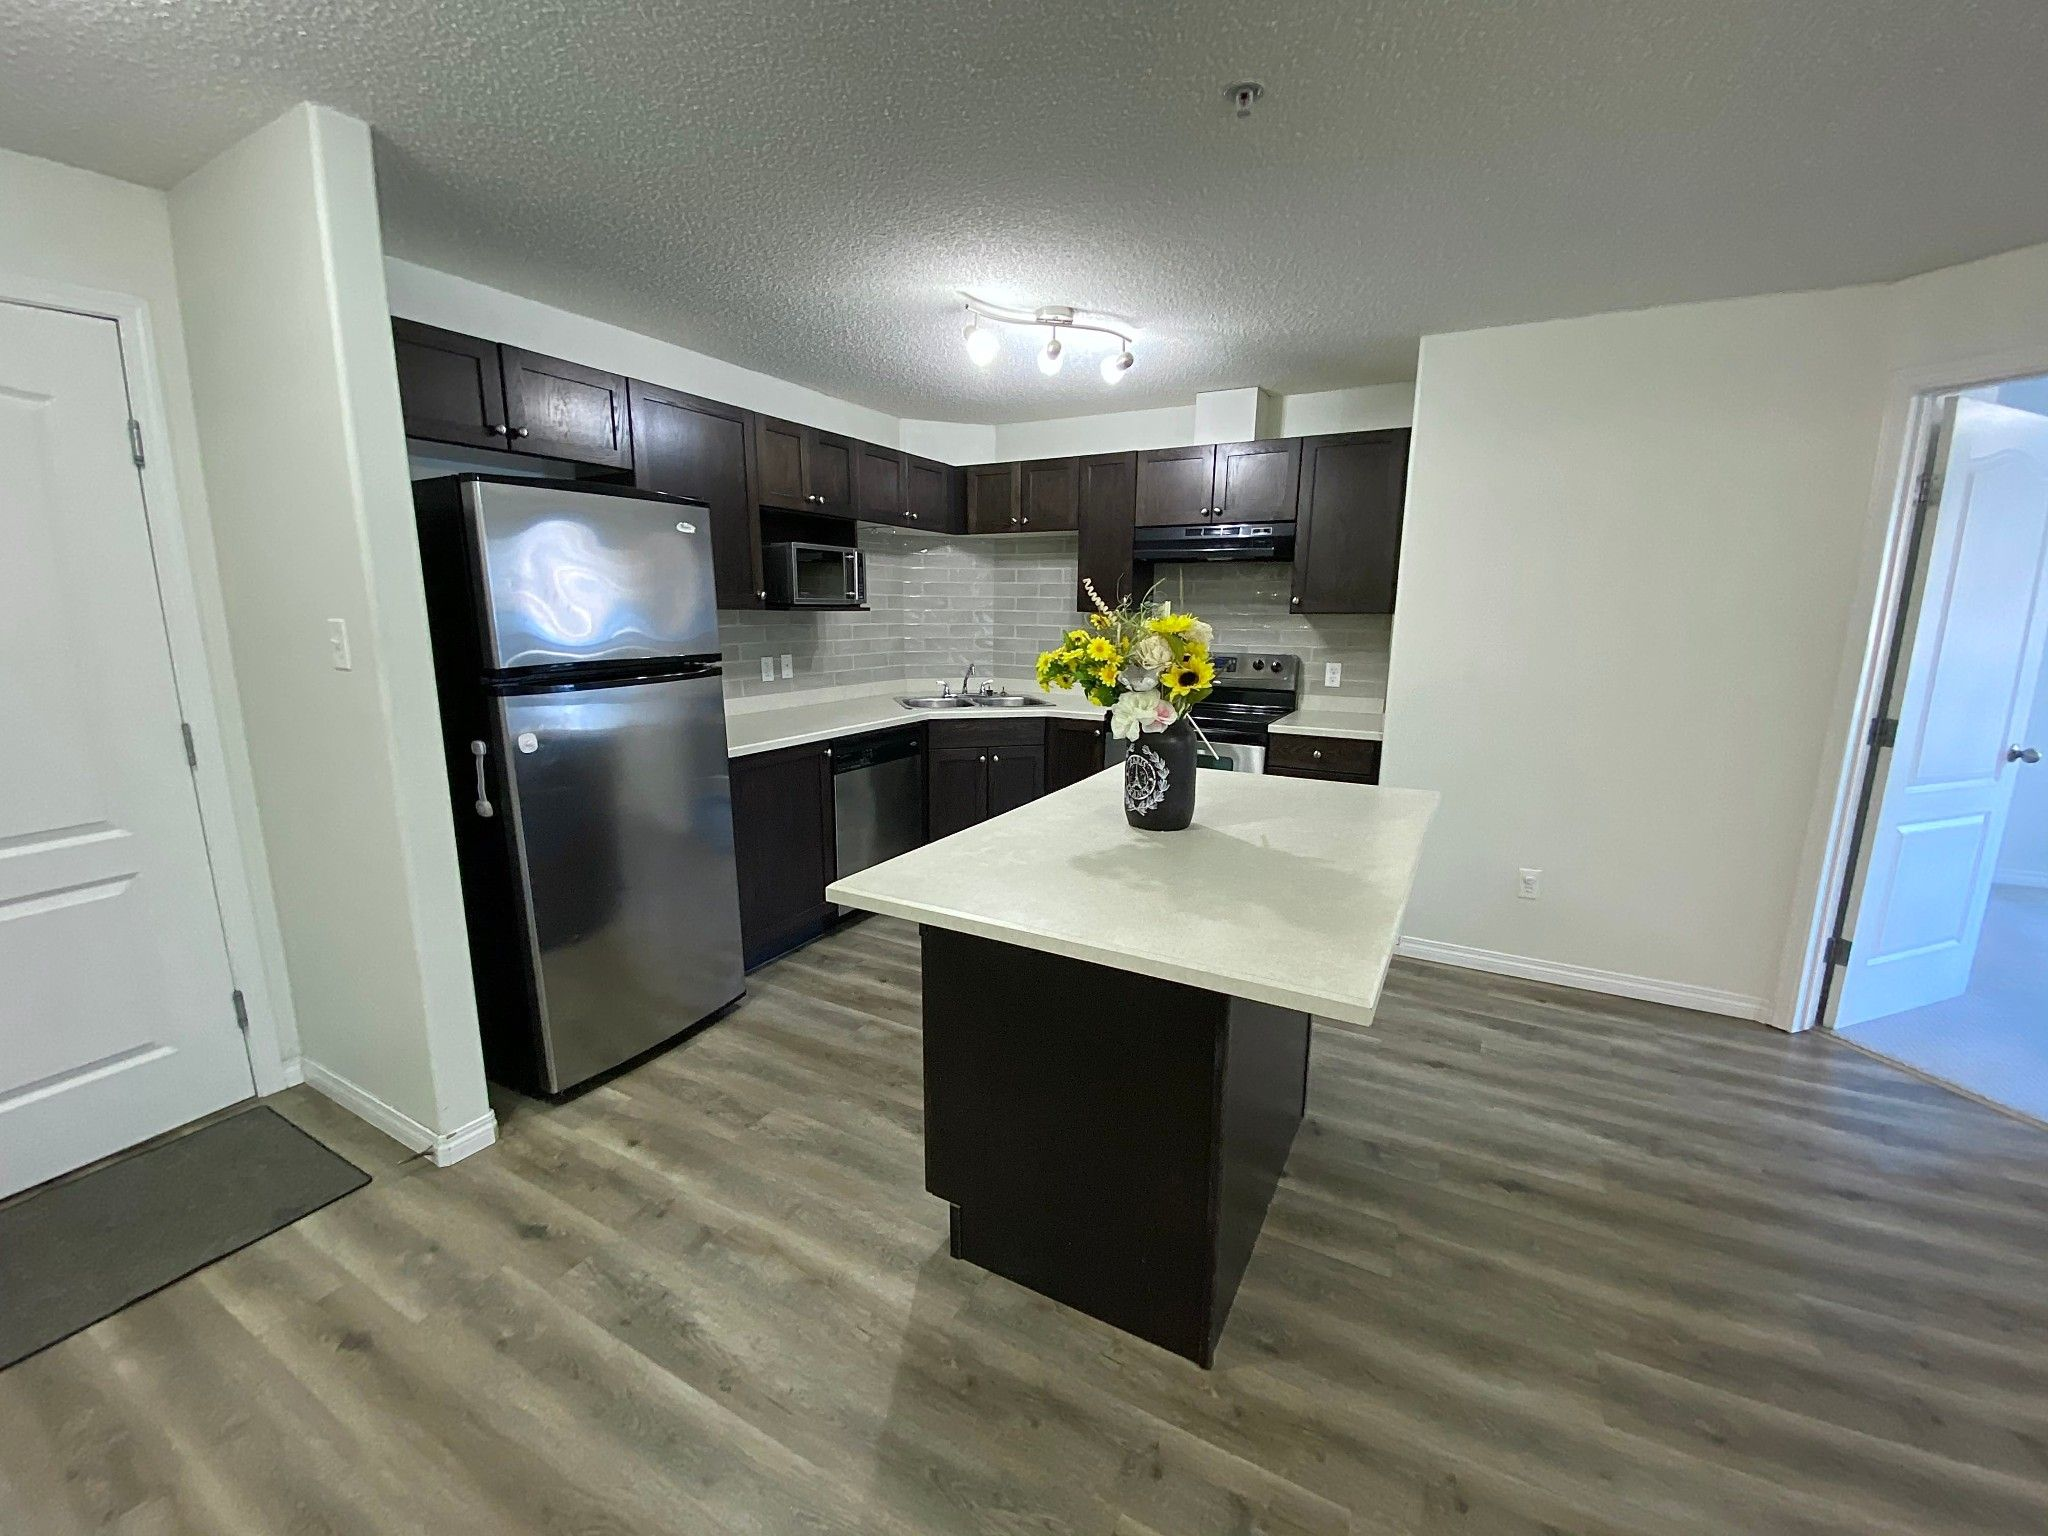 Main Photo: 7331 Terwillegar Dr in Edmonton: Condo for rent